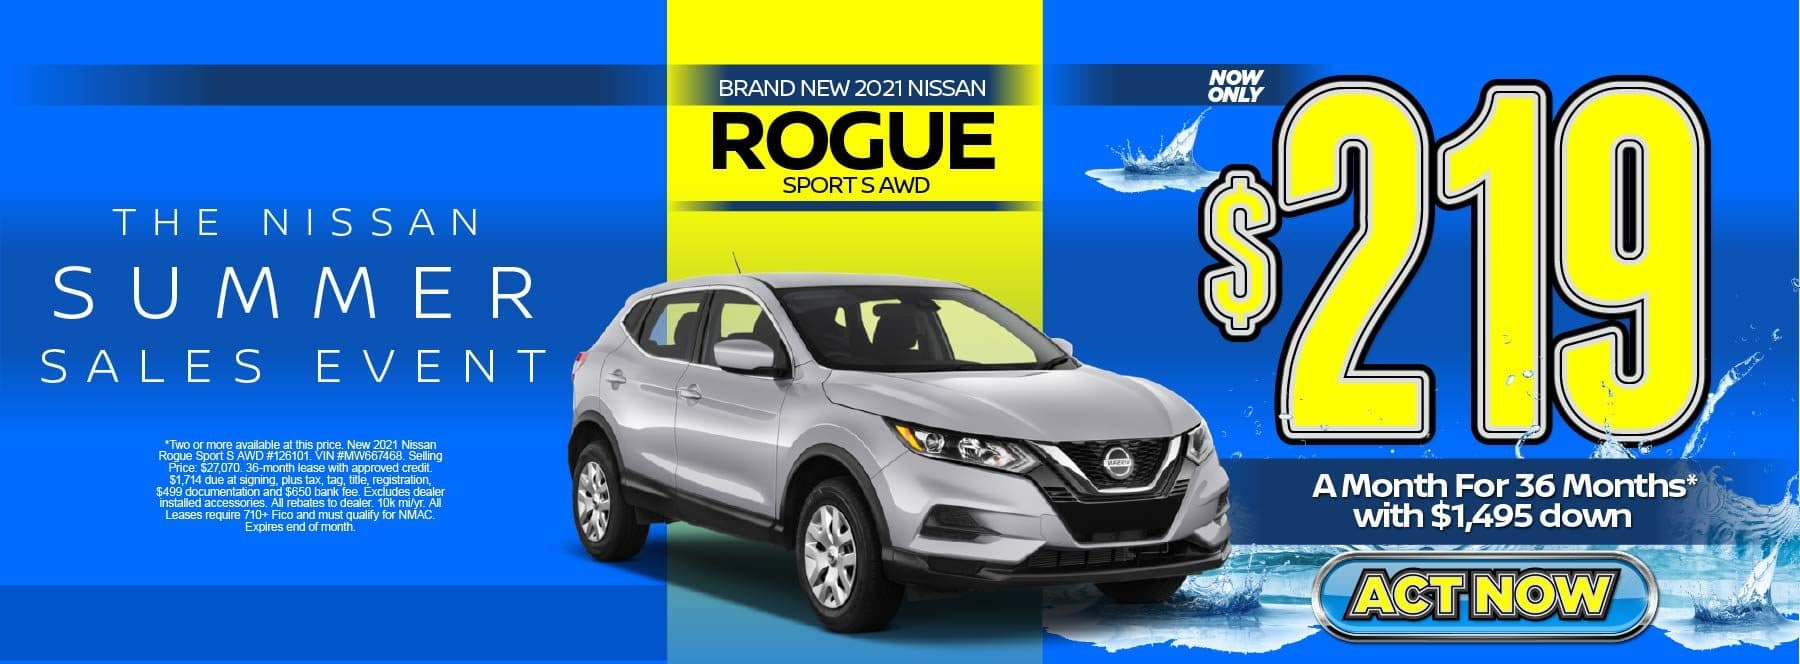 New 2021 Nissan Rogue Sport S AWD – Lease for $219/mo for 36 months with $1,495 Down* Act now.